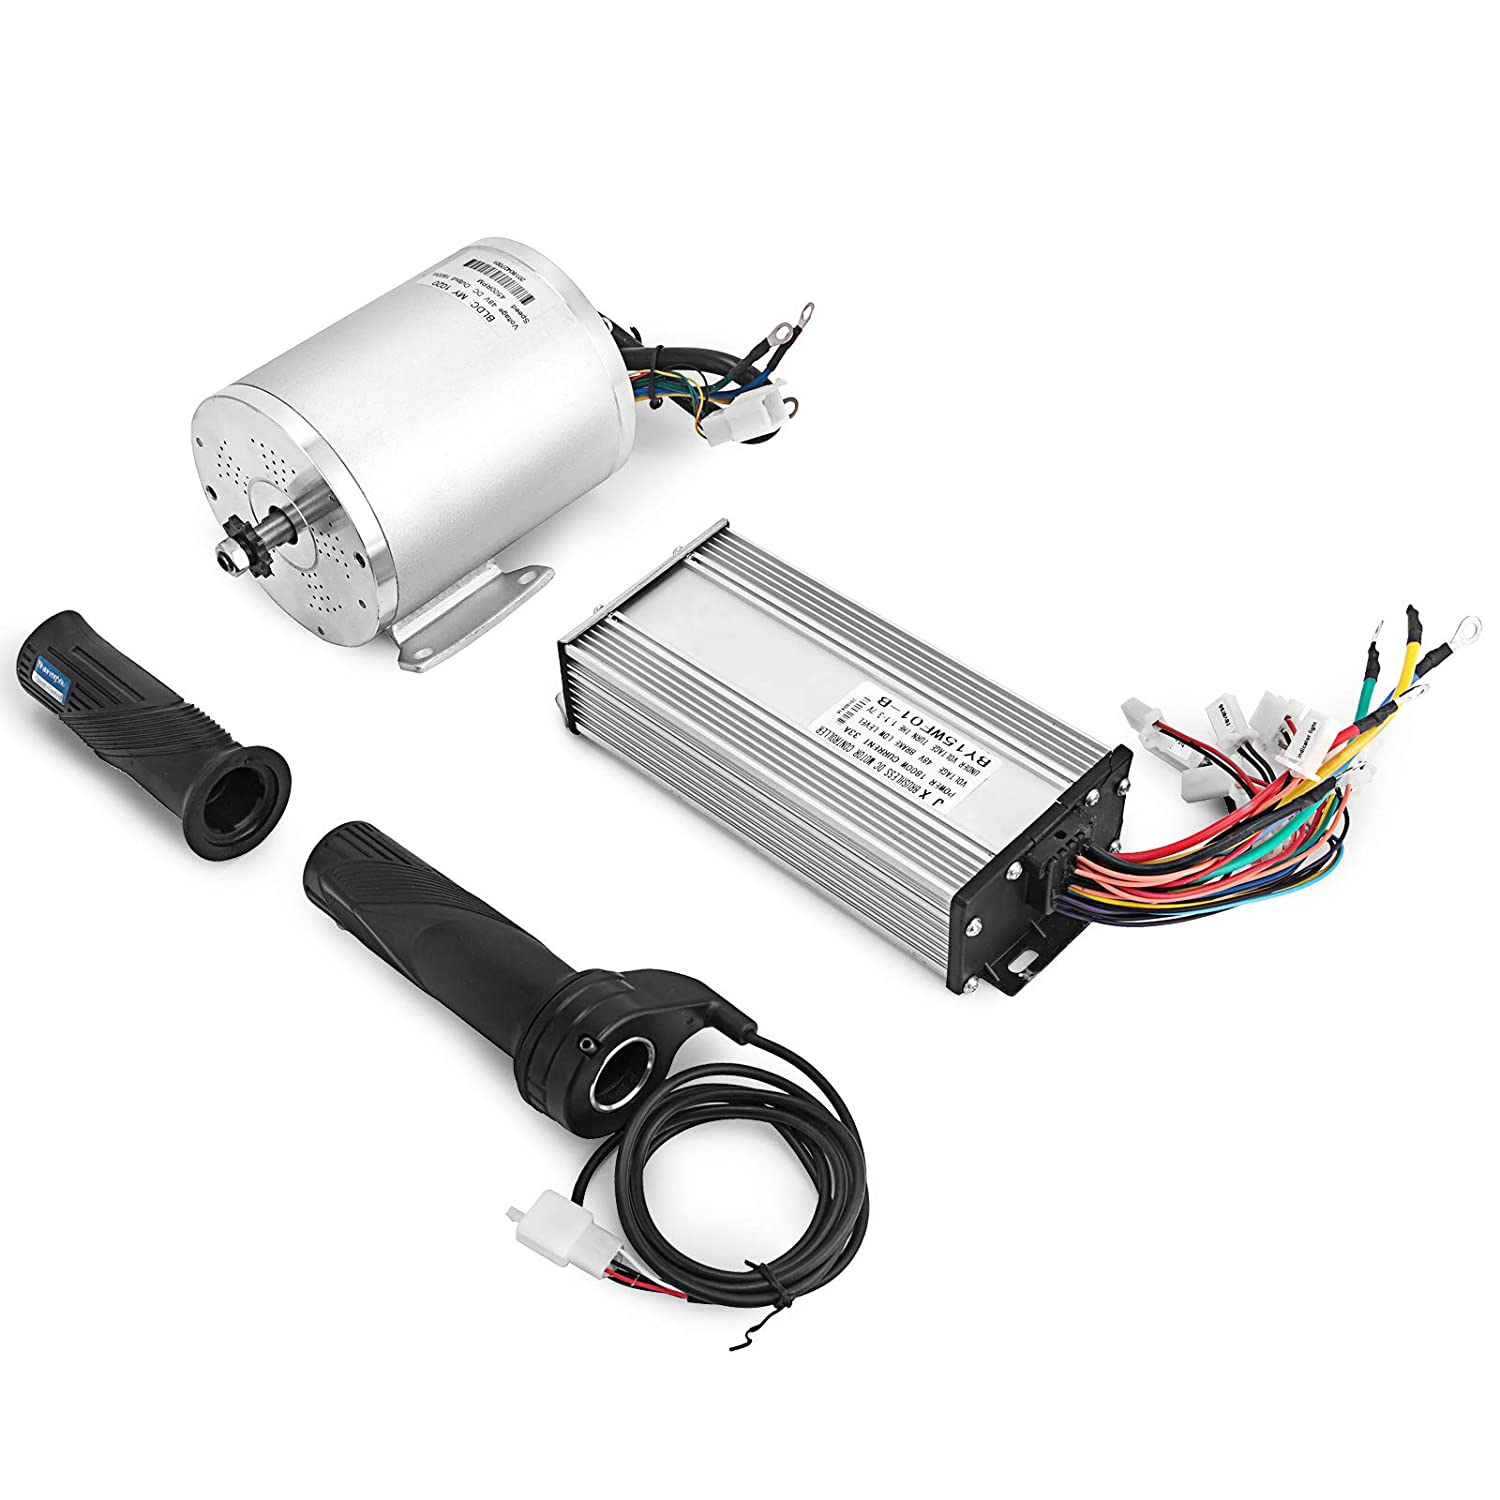 Mophorn 1800w Electric Brushless Dc Motor Kit 48v High 49cc Chinese Engine Wiring Diagram Speed With 32a Controller And Throttle Grip For Go Karts E Bike